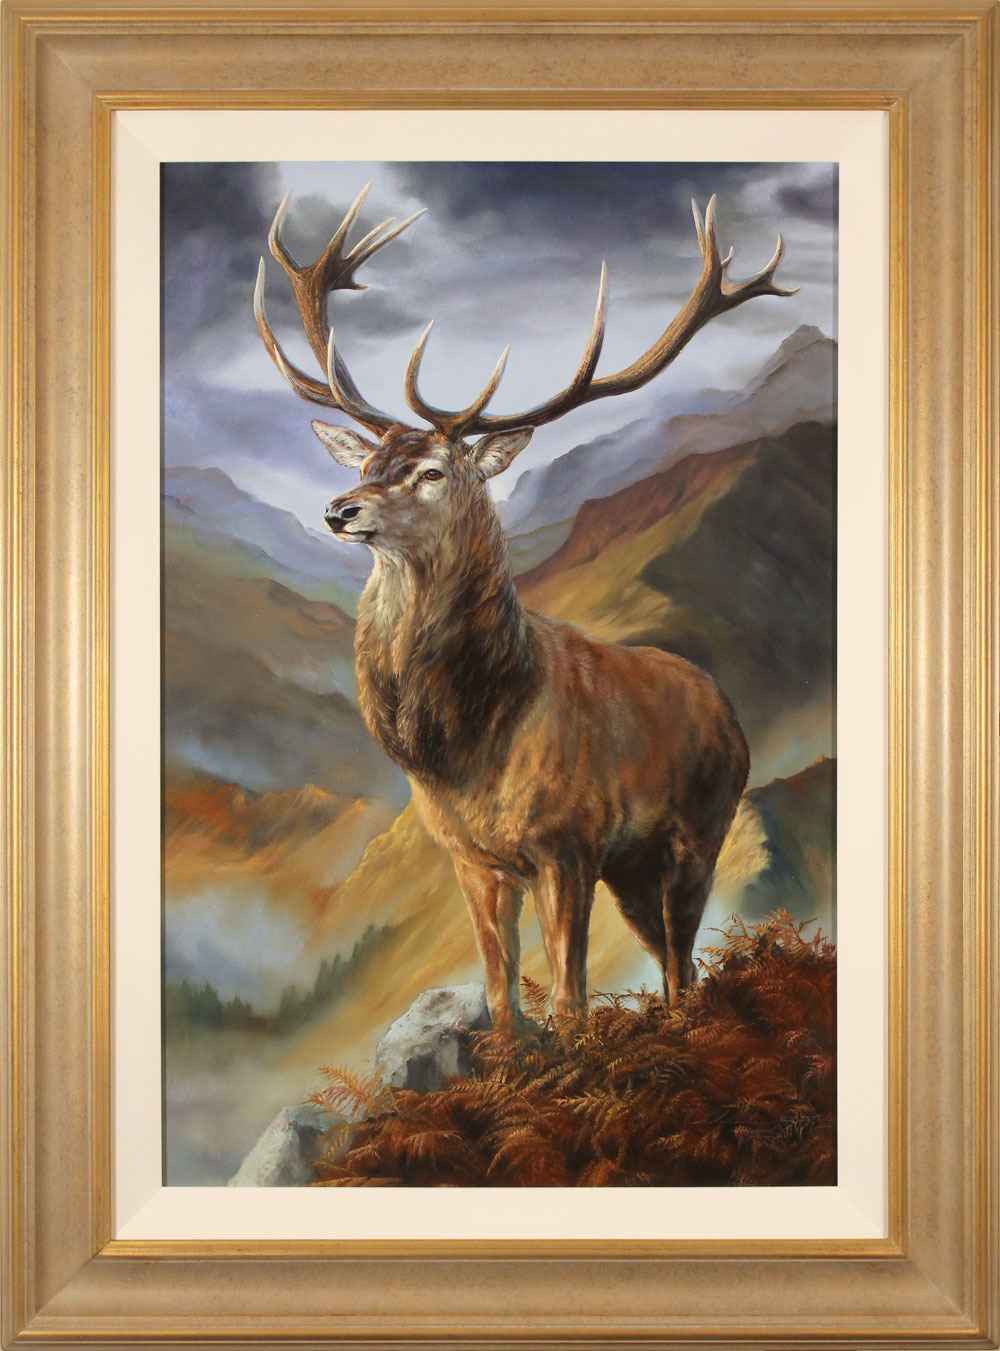 Natalie Stutely, Original oil painting on panel, Highland Monarch, click to enlarge